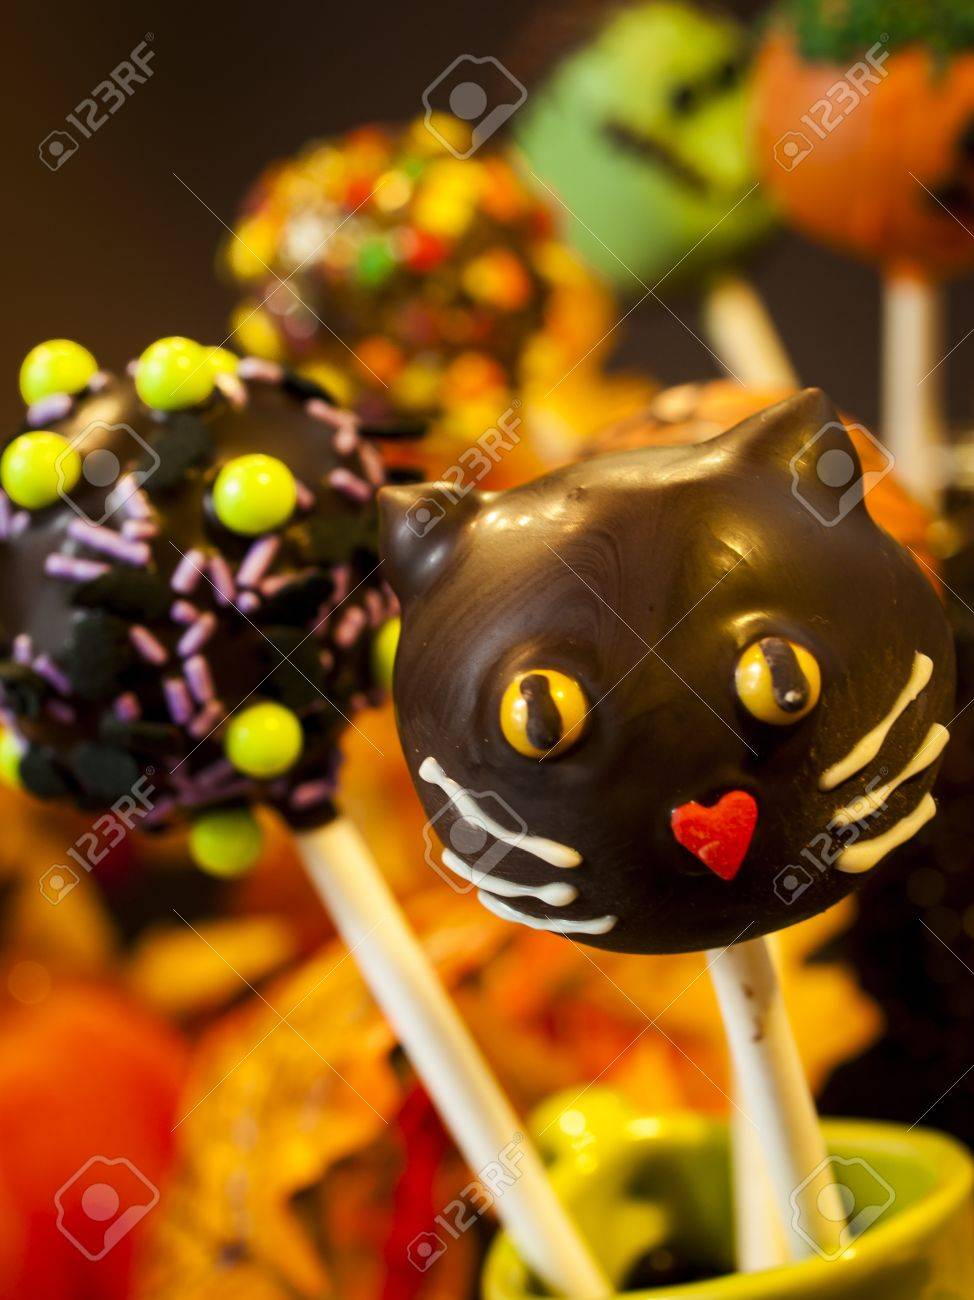 halloween gourmet cake pops with holiday decor on brown backround